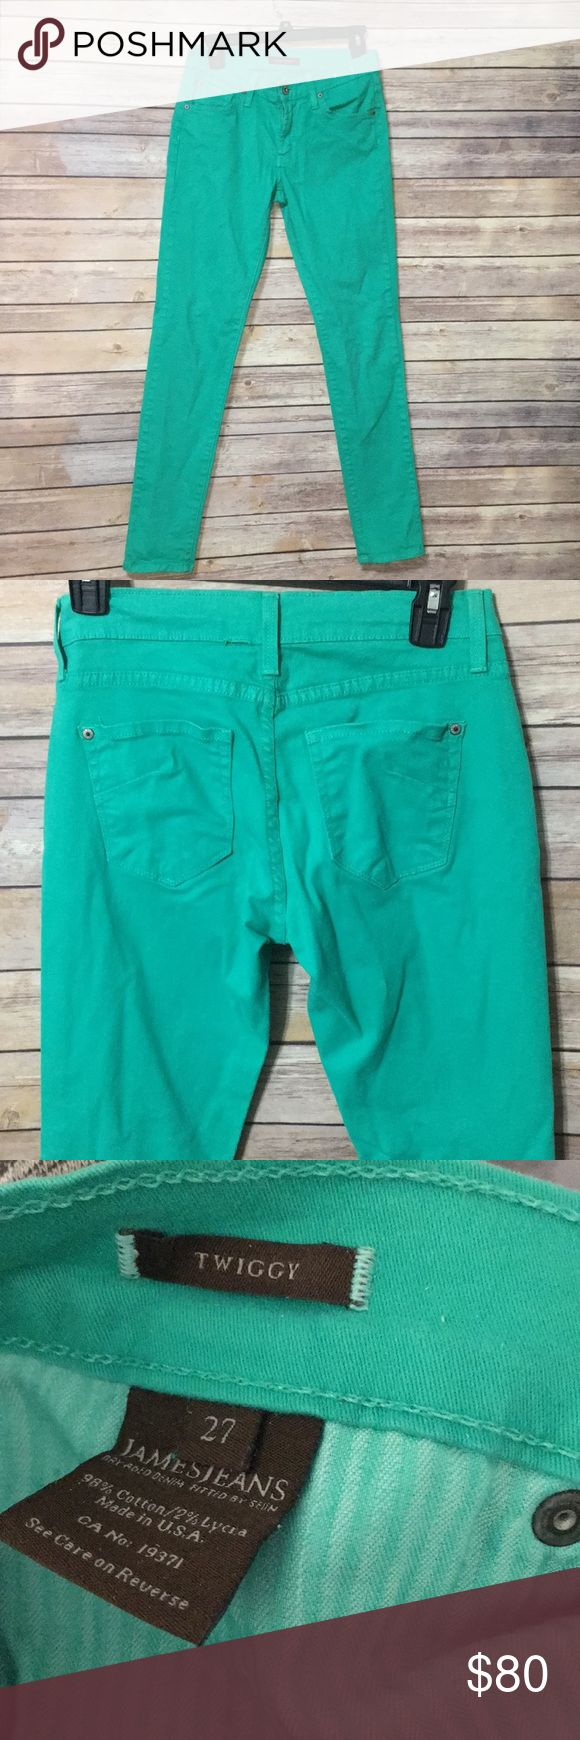 James Jeans Twiggy Cute teal skinny jeans really soft 98% cotton. Made in USA James Jeans Jeans Skinny